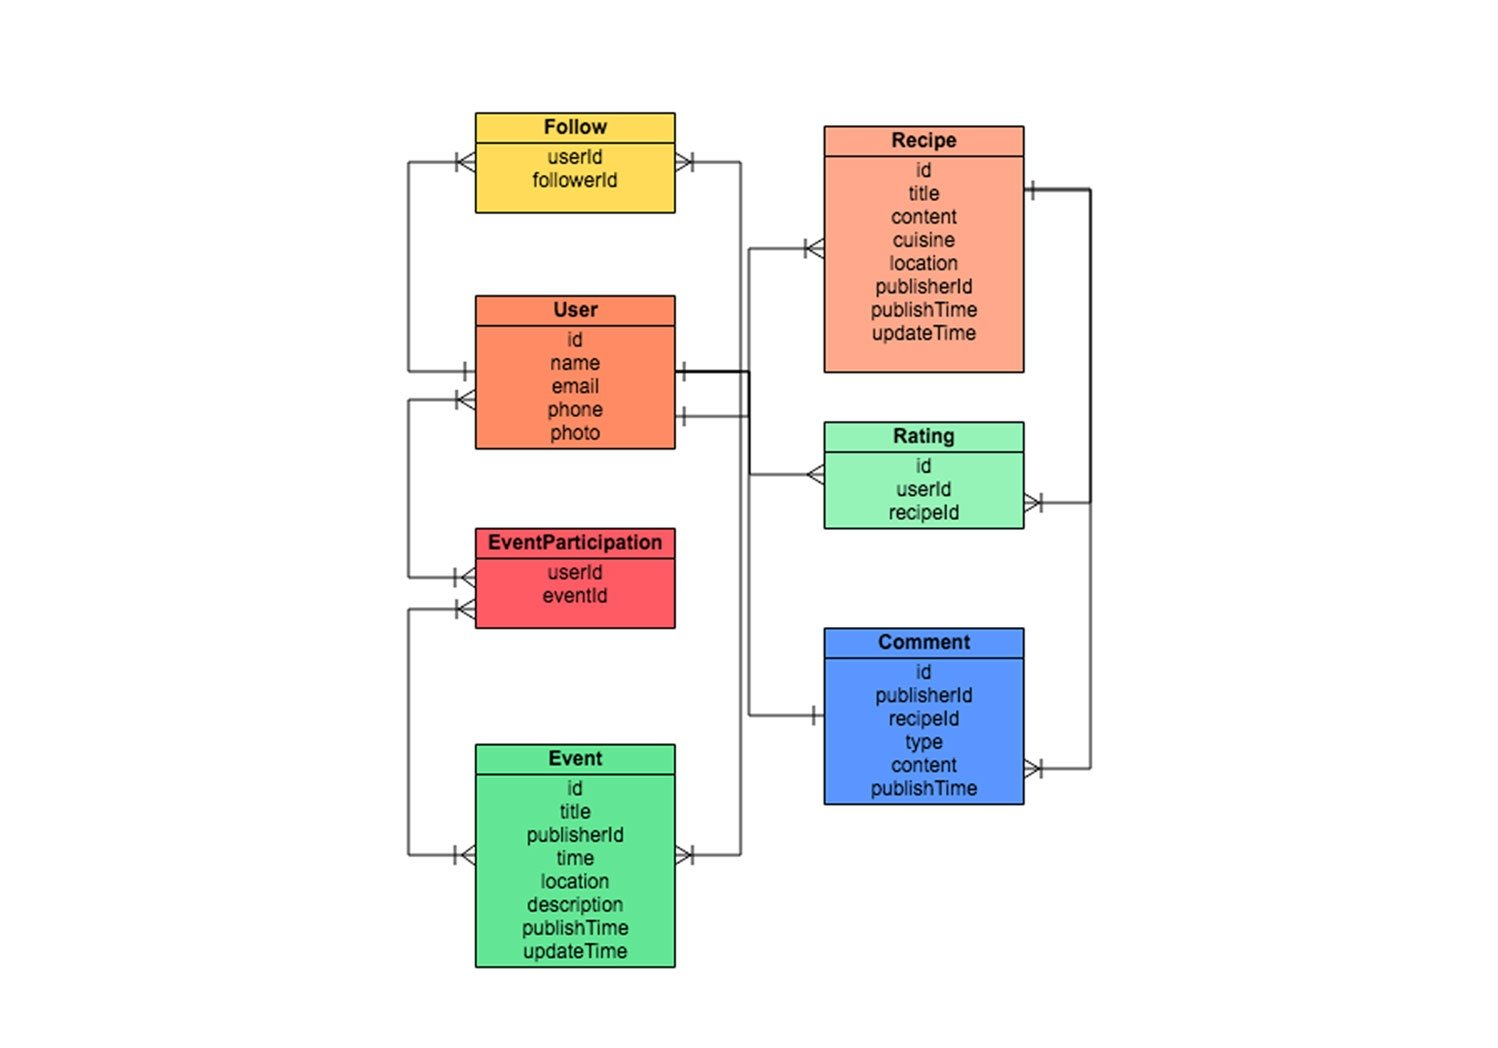 Draw Entity Relationship Diagrams Online | Er Diagram Tool inside How To Make Er Diagram Online